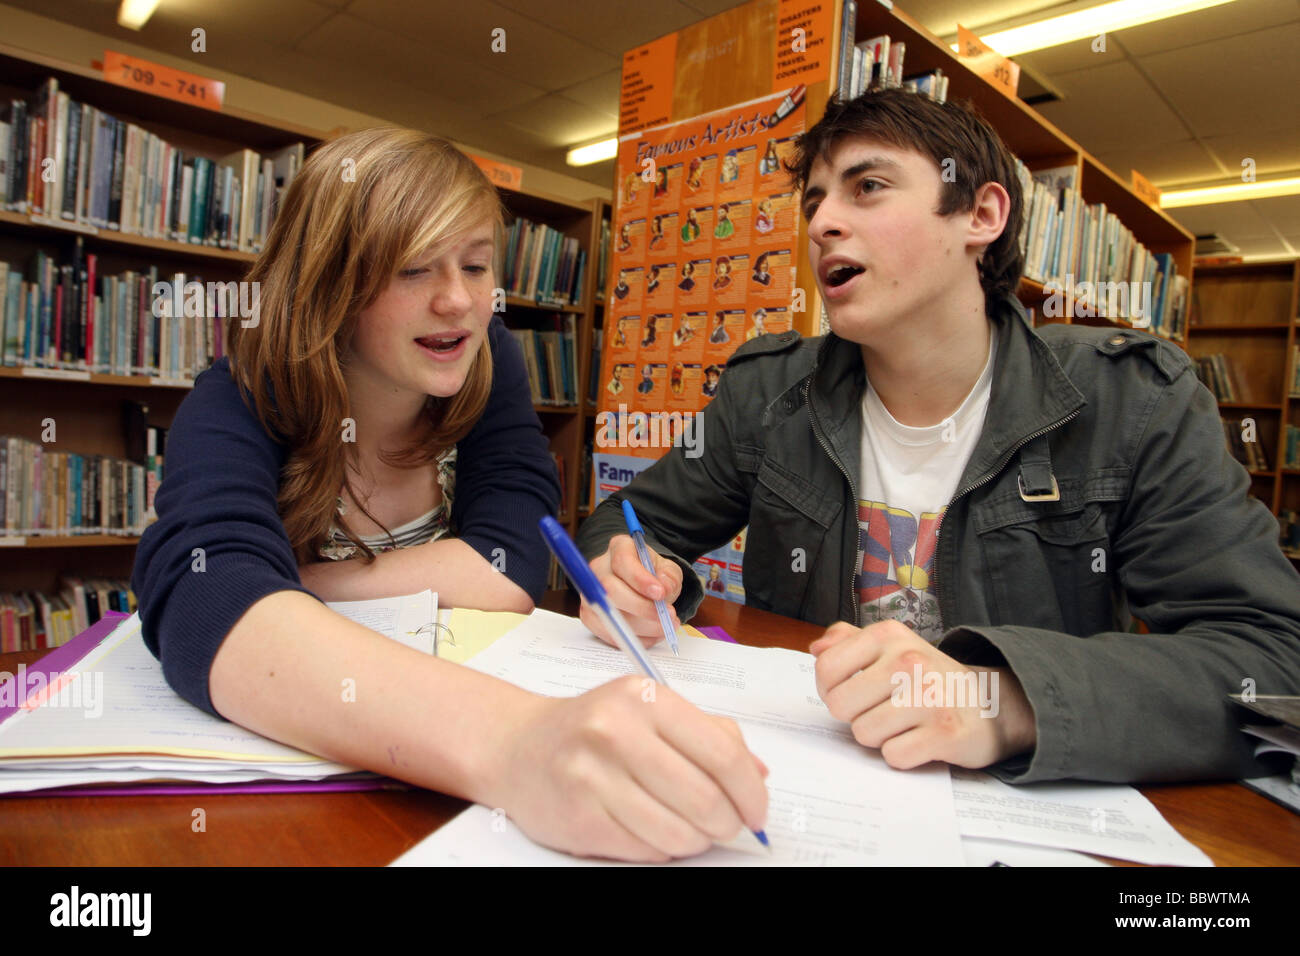 Students talking and working in school library in preparation for A Levels. They are both 17-18 years old. - Stock Image